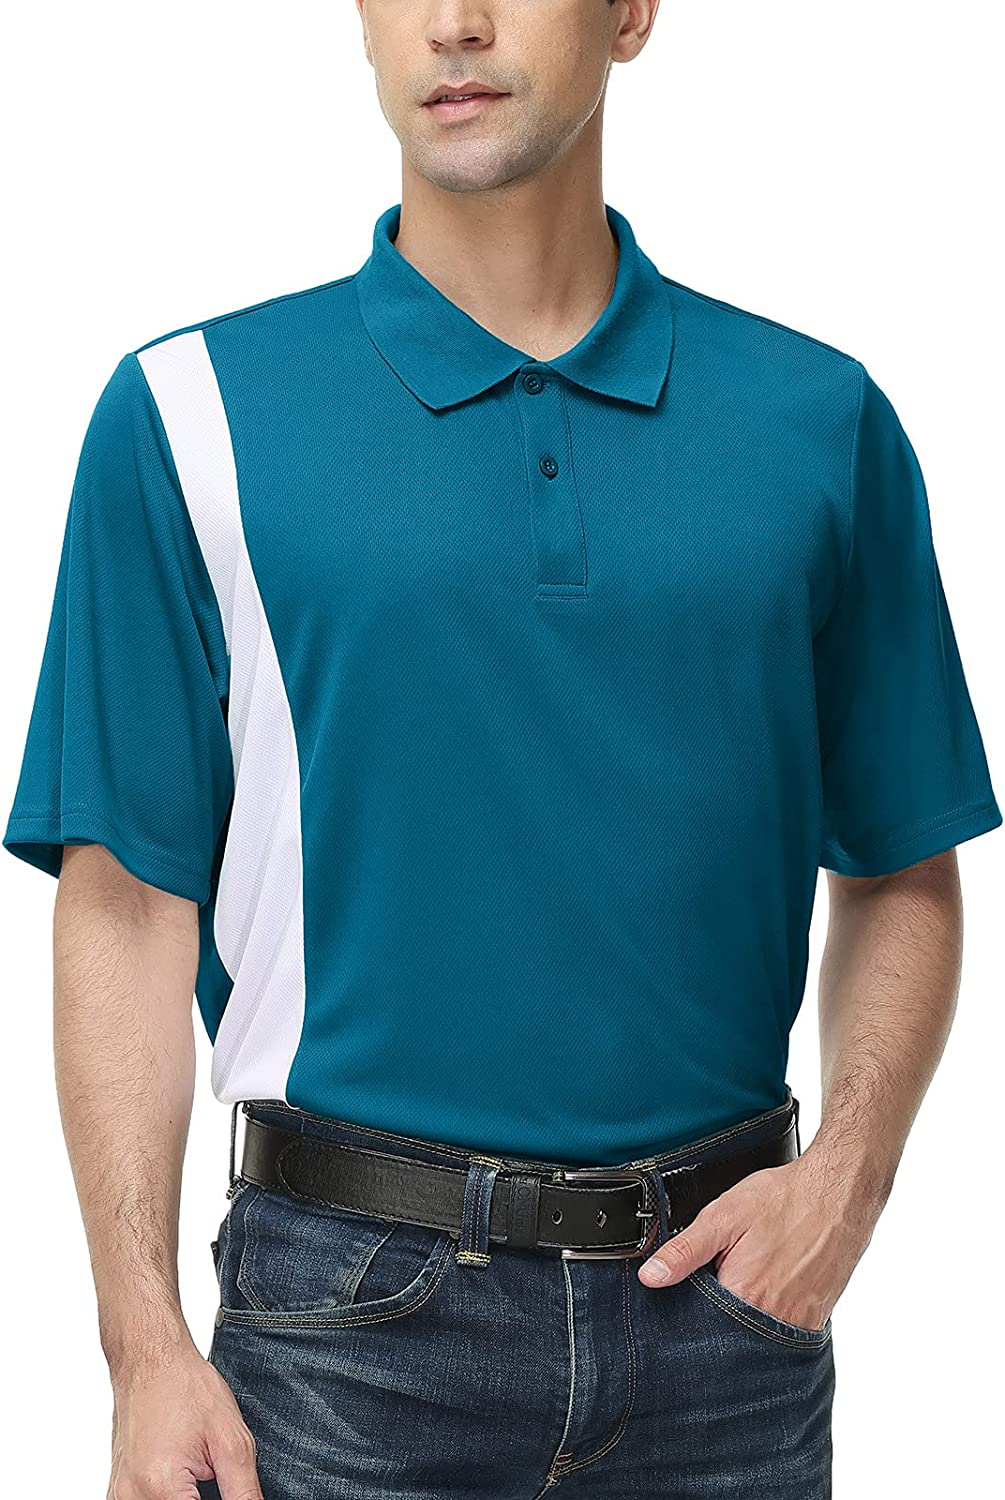 Mens Big and Tall Polo shopping Cool Golf for Special Campaign Shirts Athletic Performance